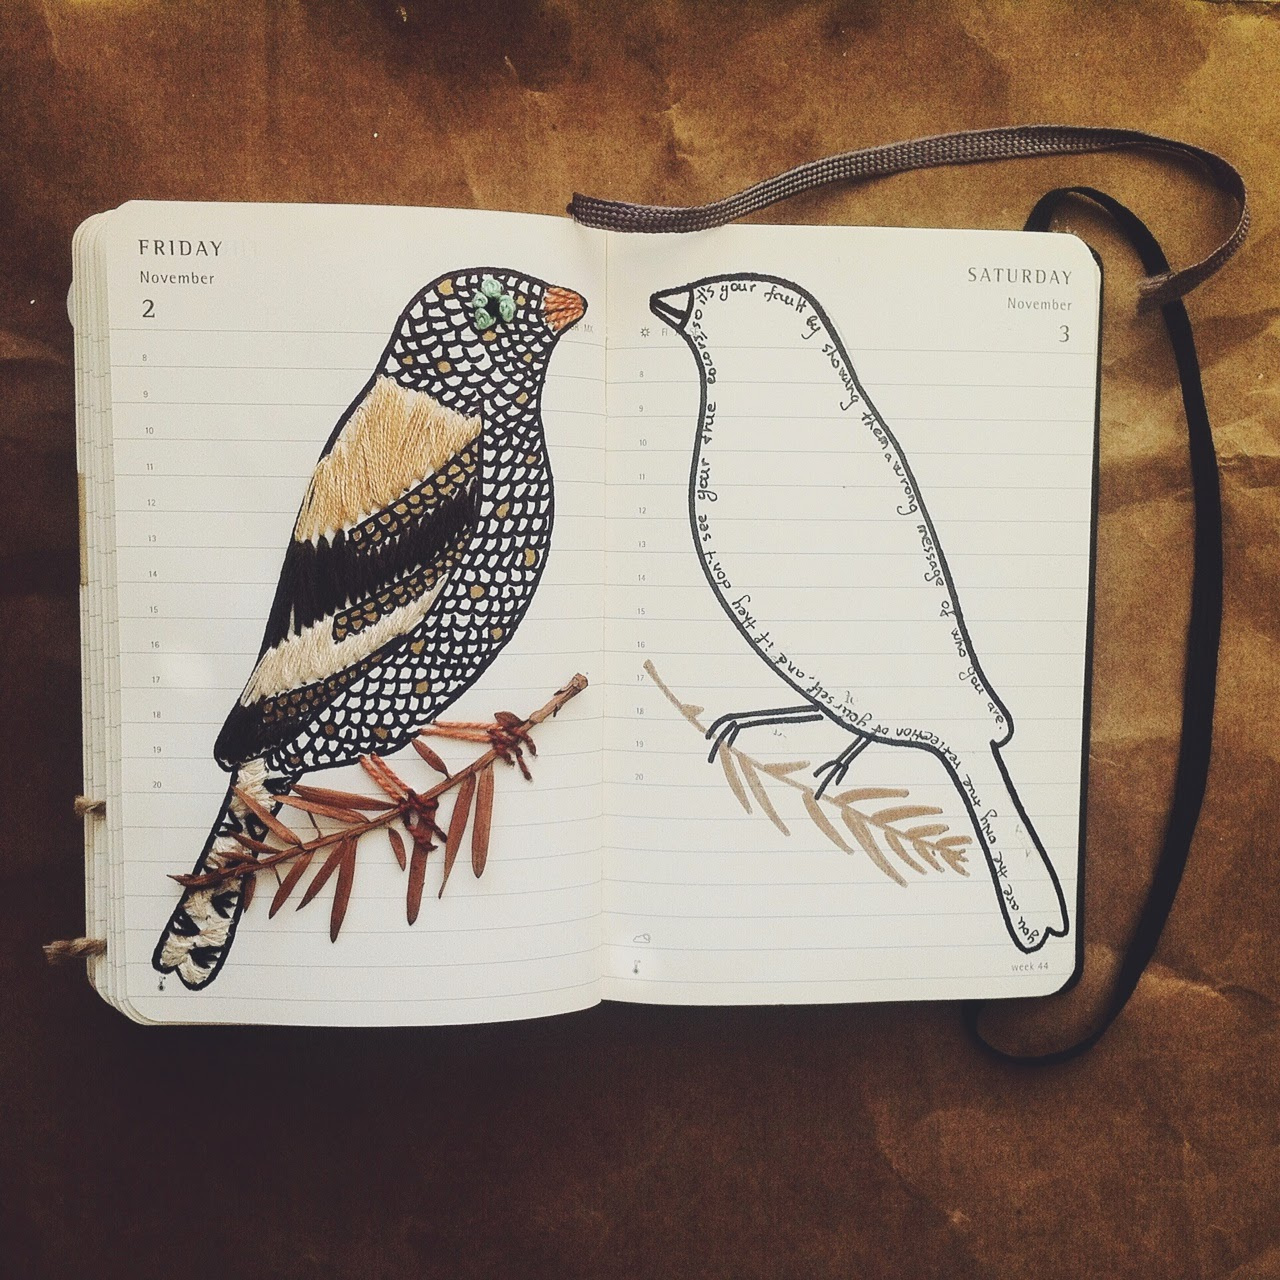 Tlv birdie slow living diary embroidery on paper art5